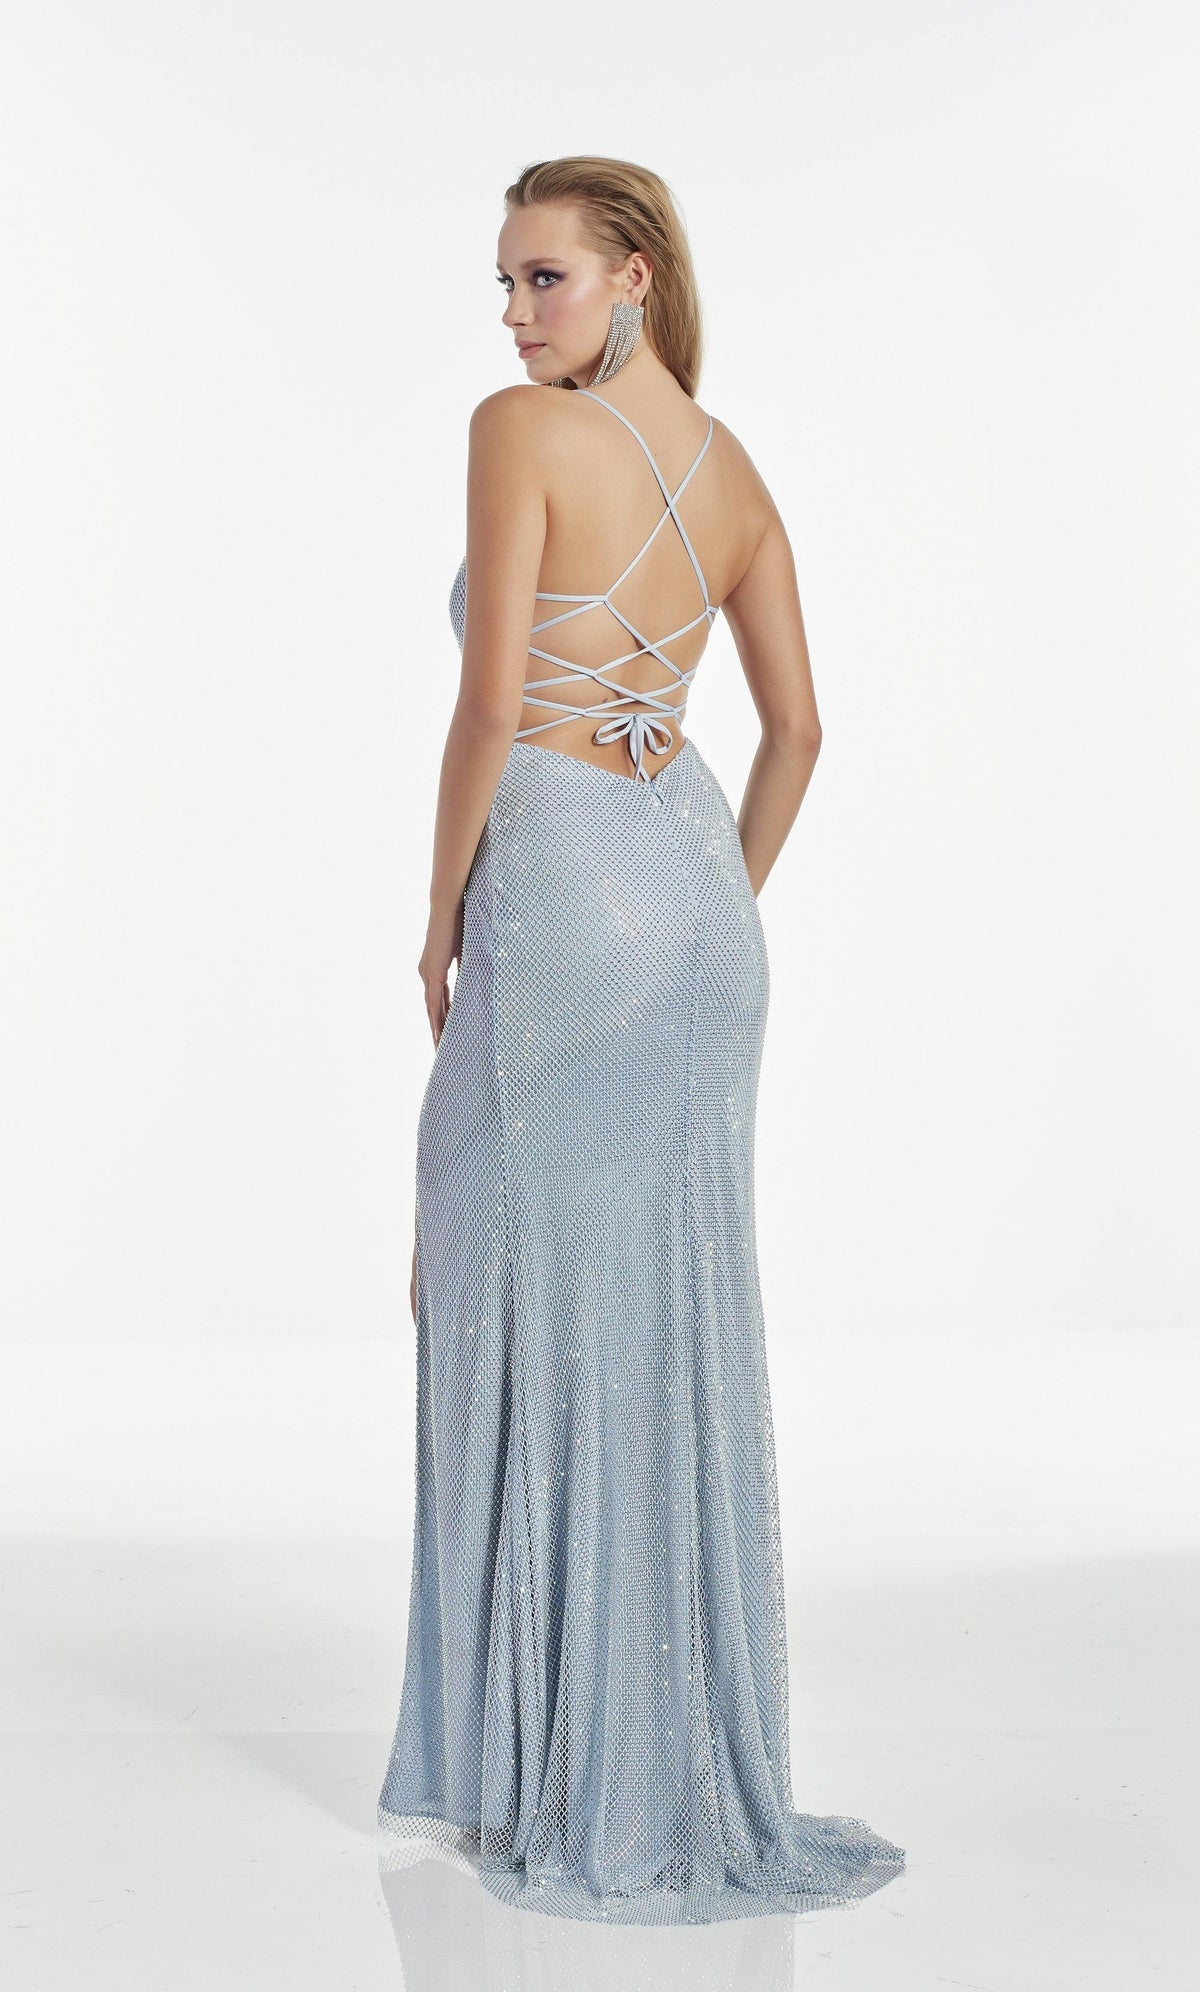 Light Blue crystal mesh column prom dress with a strappy back and train